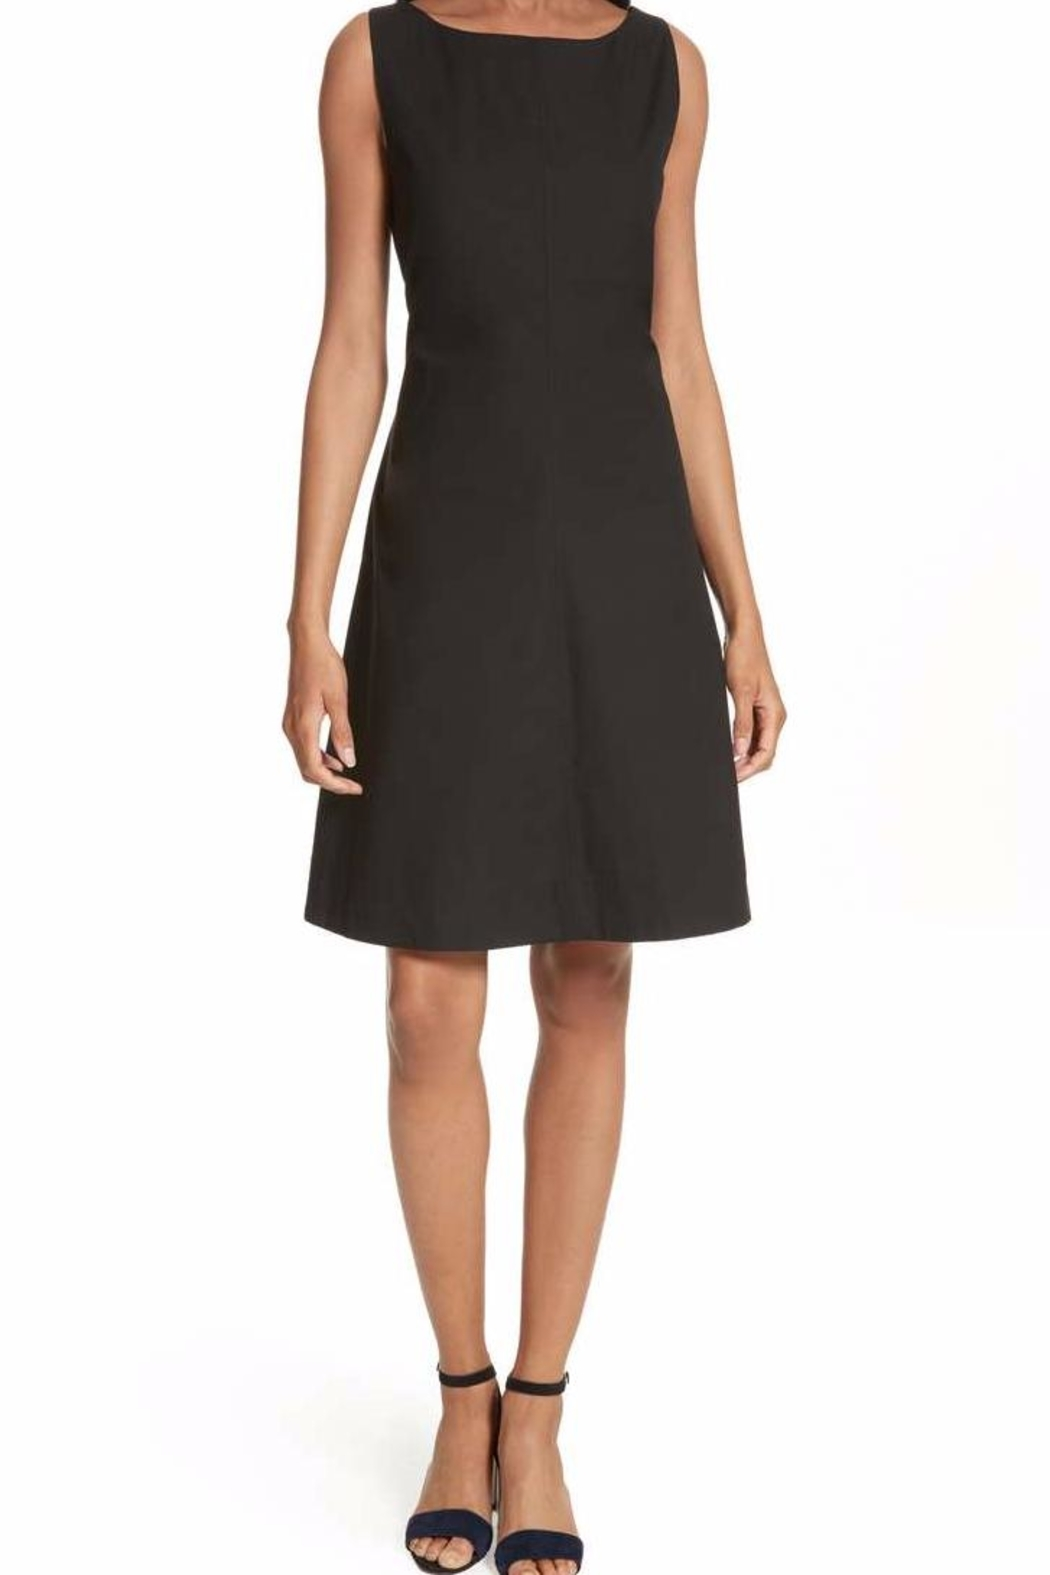 Theory Black Cocktail Dress - Main Image